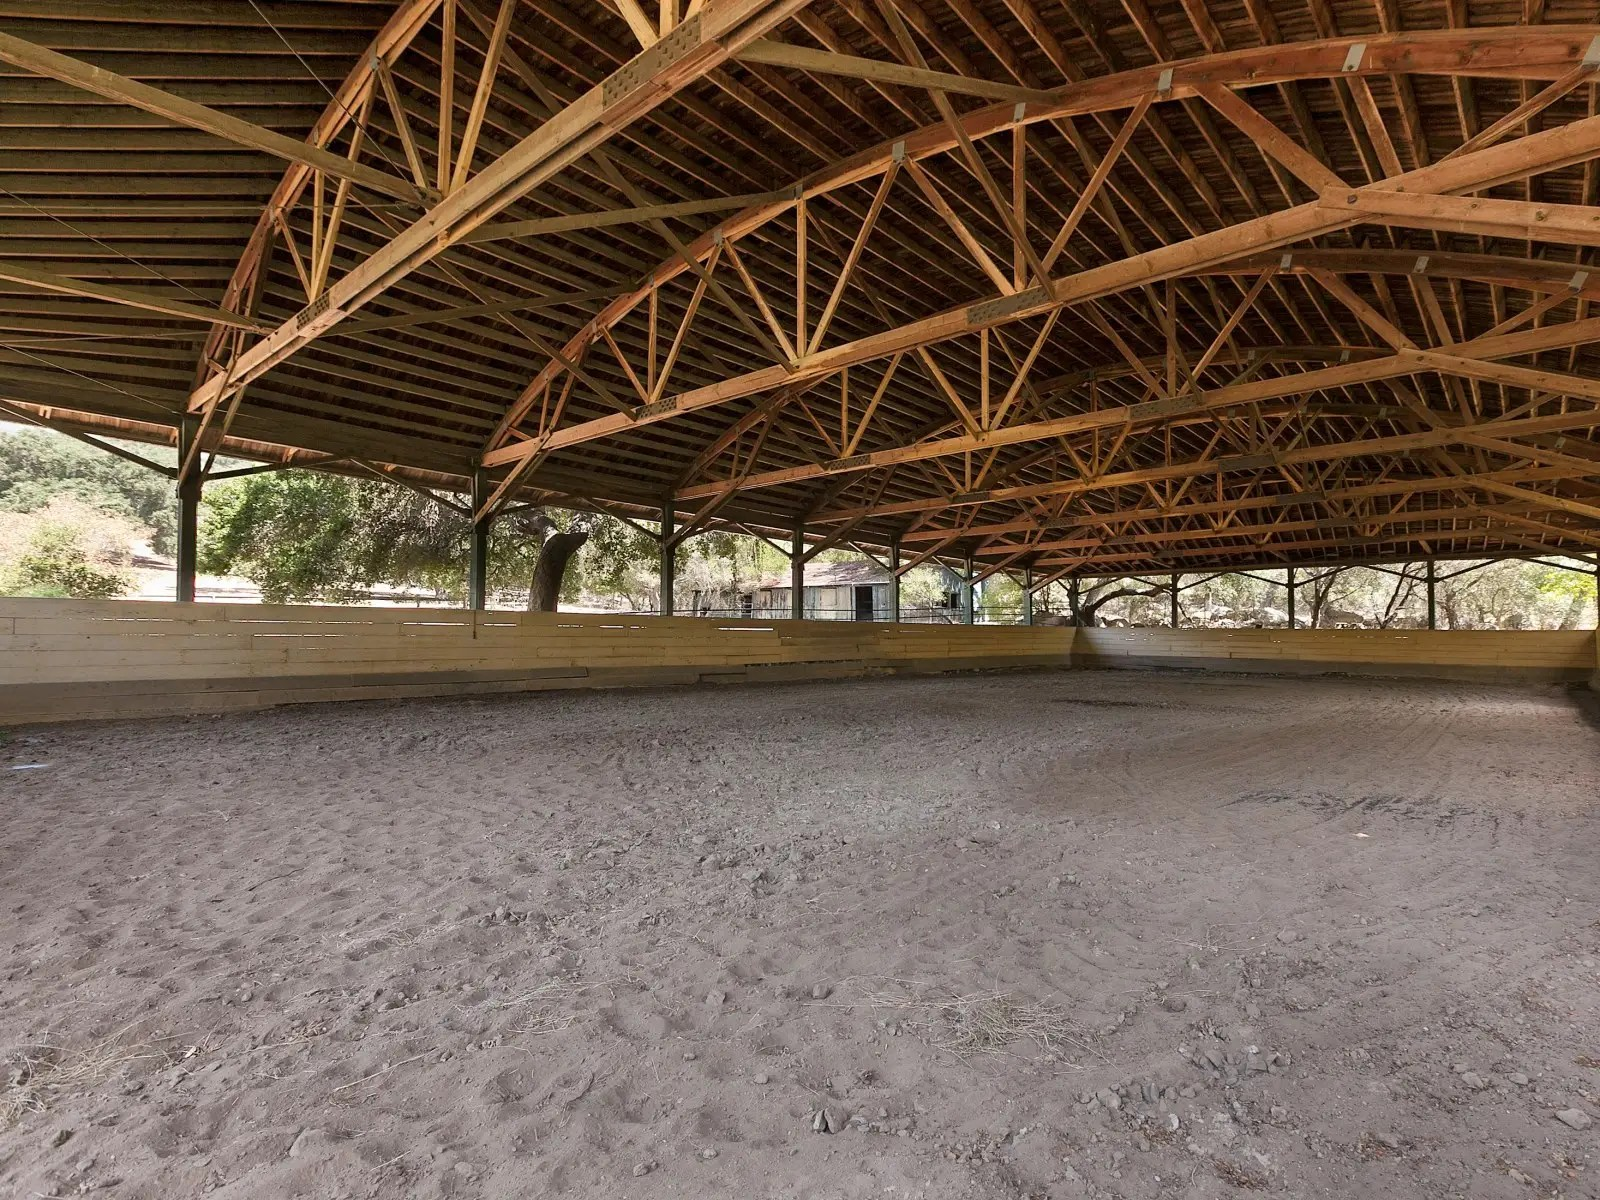 There are also outdoor paddocks, a trophy room, a covered riding arena, and an outdoor training track.